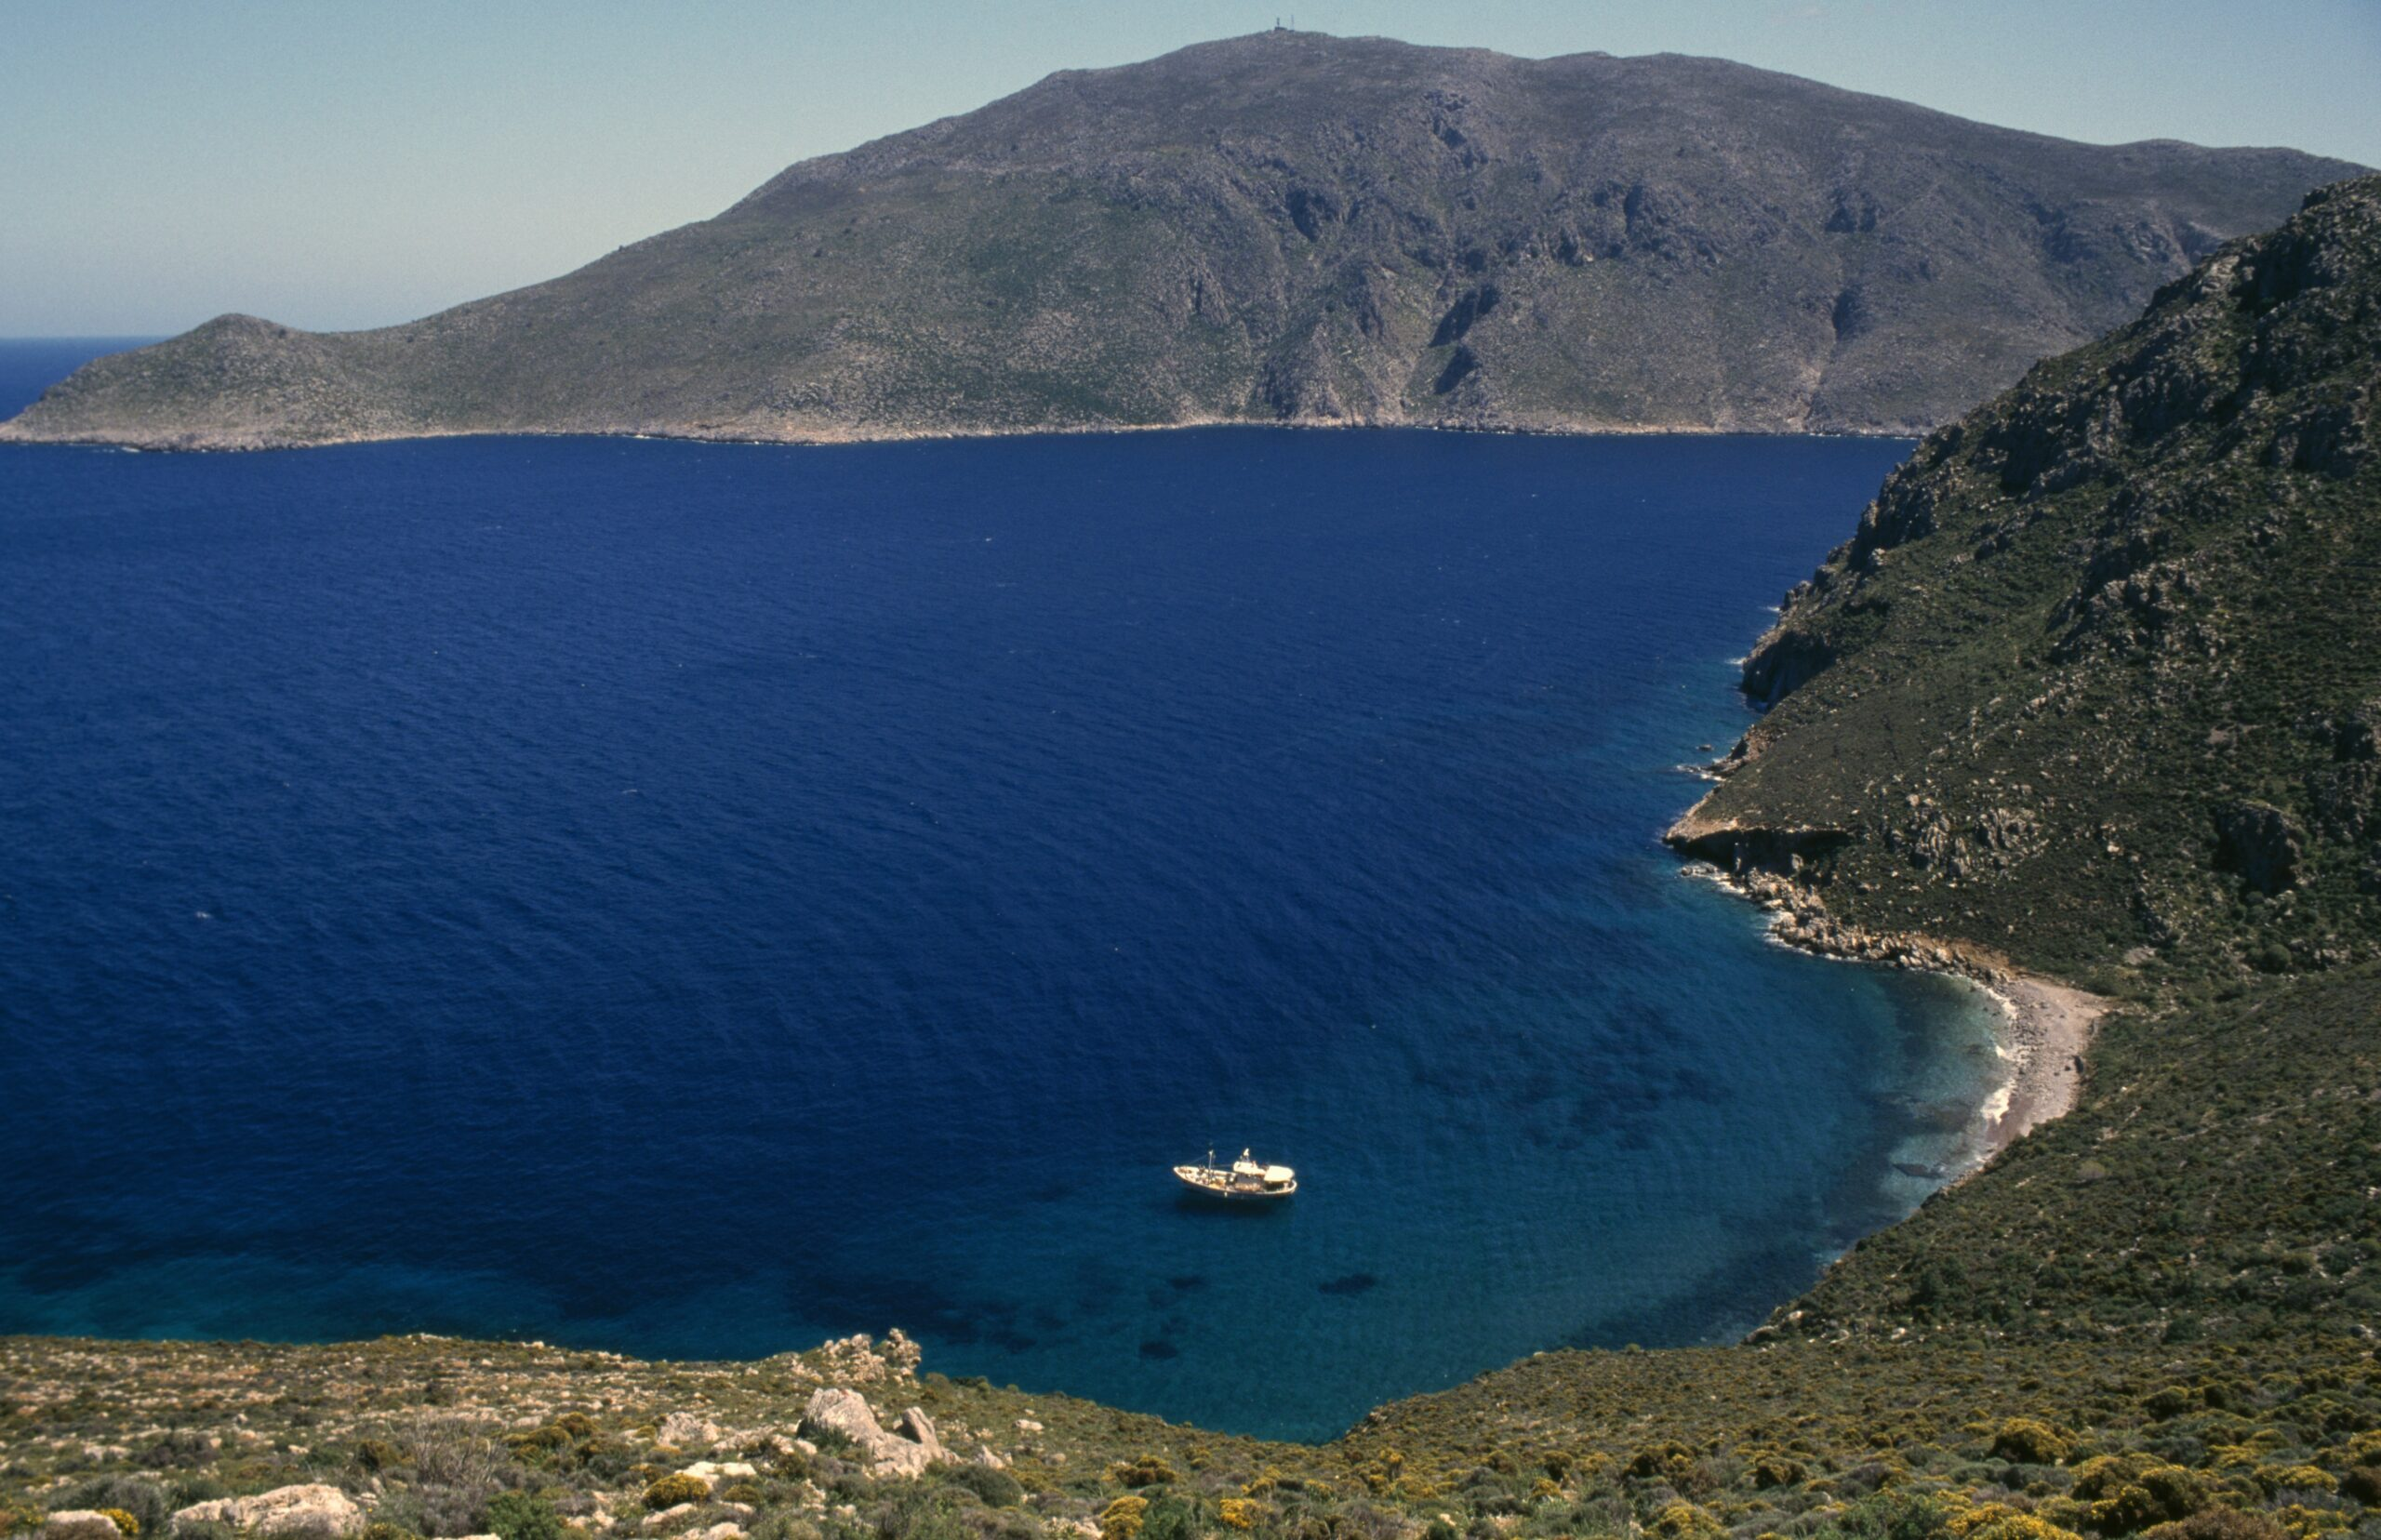 A coastal view of Tilos island, Greece. Credit: DeAgostini/Getty Images